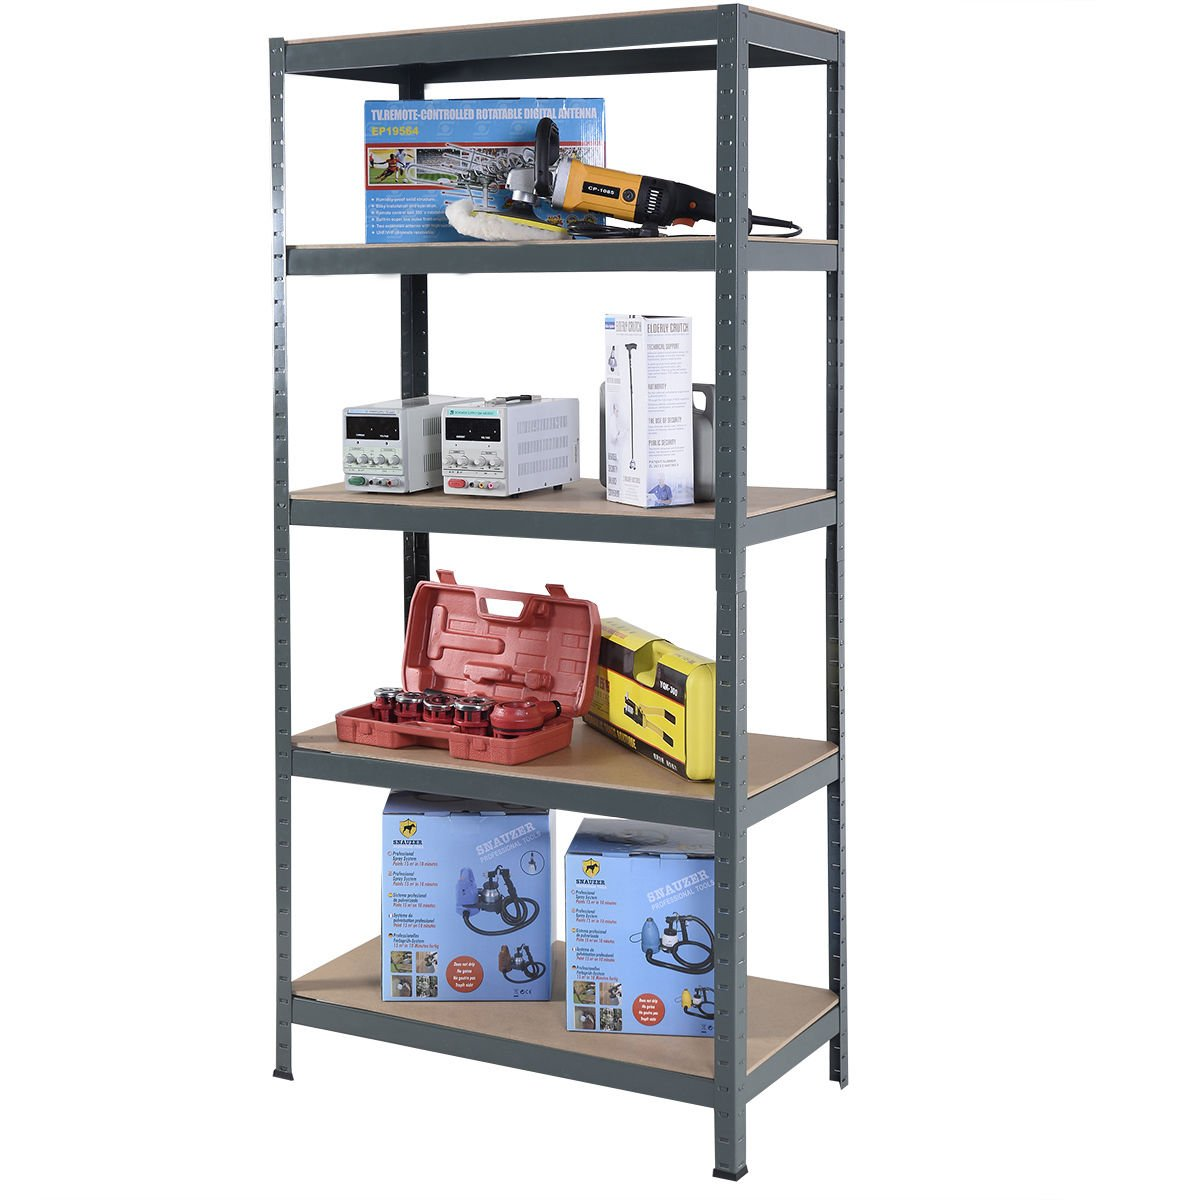 Moon Daughter 72'' Heavy Duty Steel 5 Level Garage Shelf Metal Storage Adjustable Shelves Unit Free Standing Organization